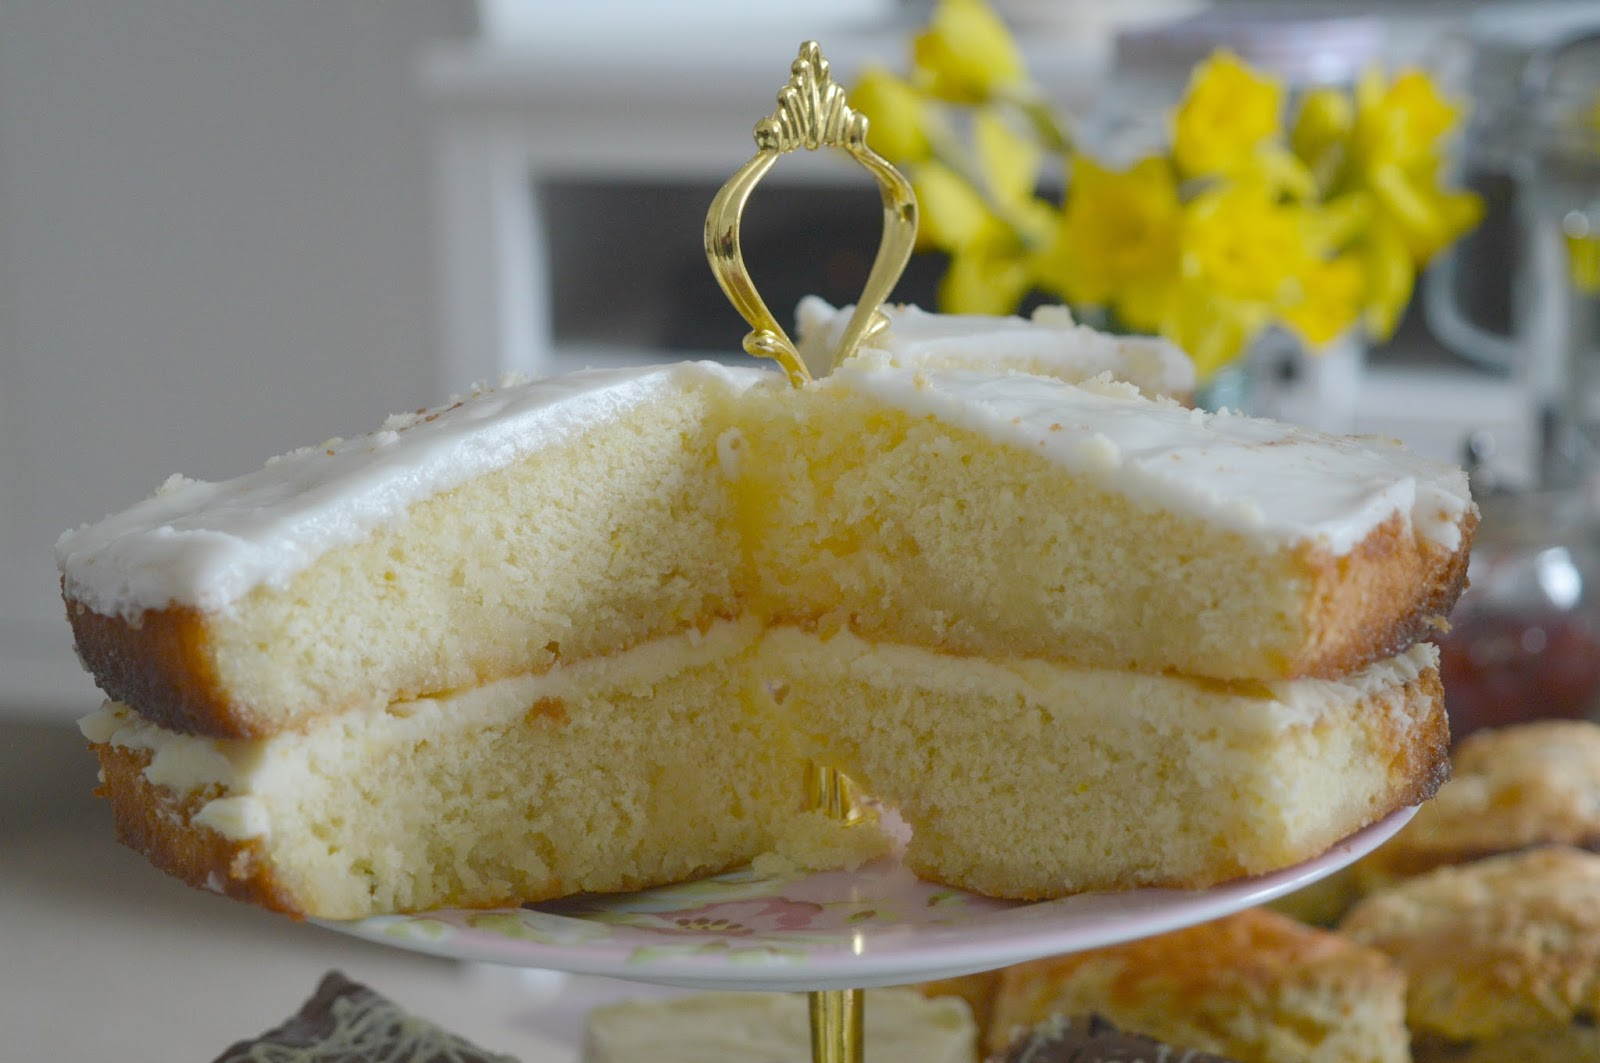 Mrs Dellow's Delights North East Afternoon Tea Delivery Service - Lemon Drizzle Cake